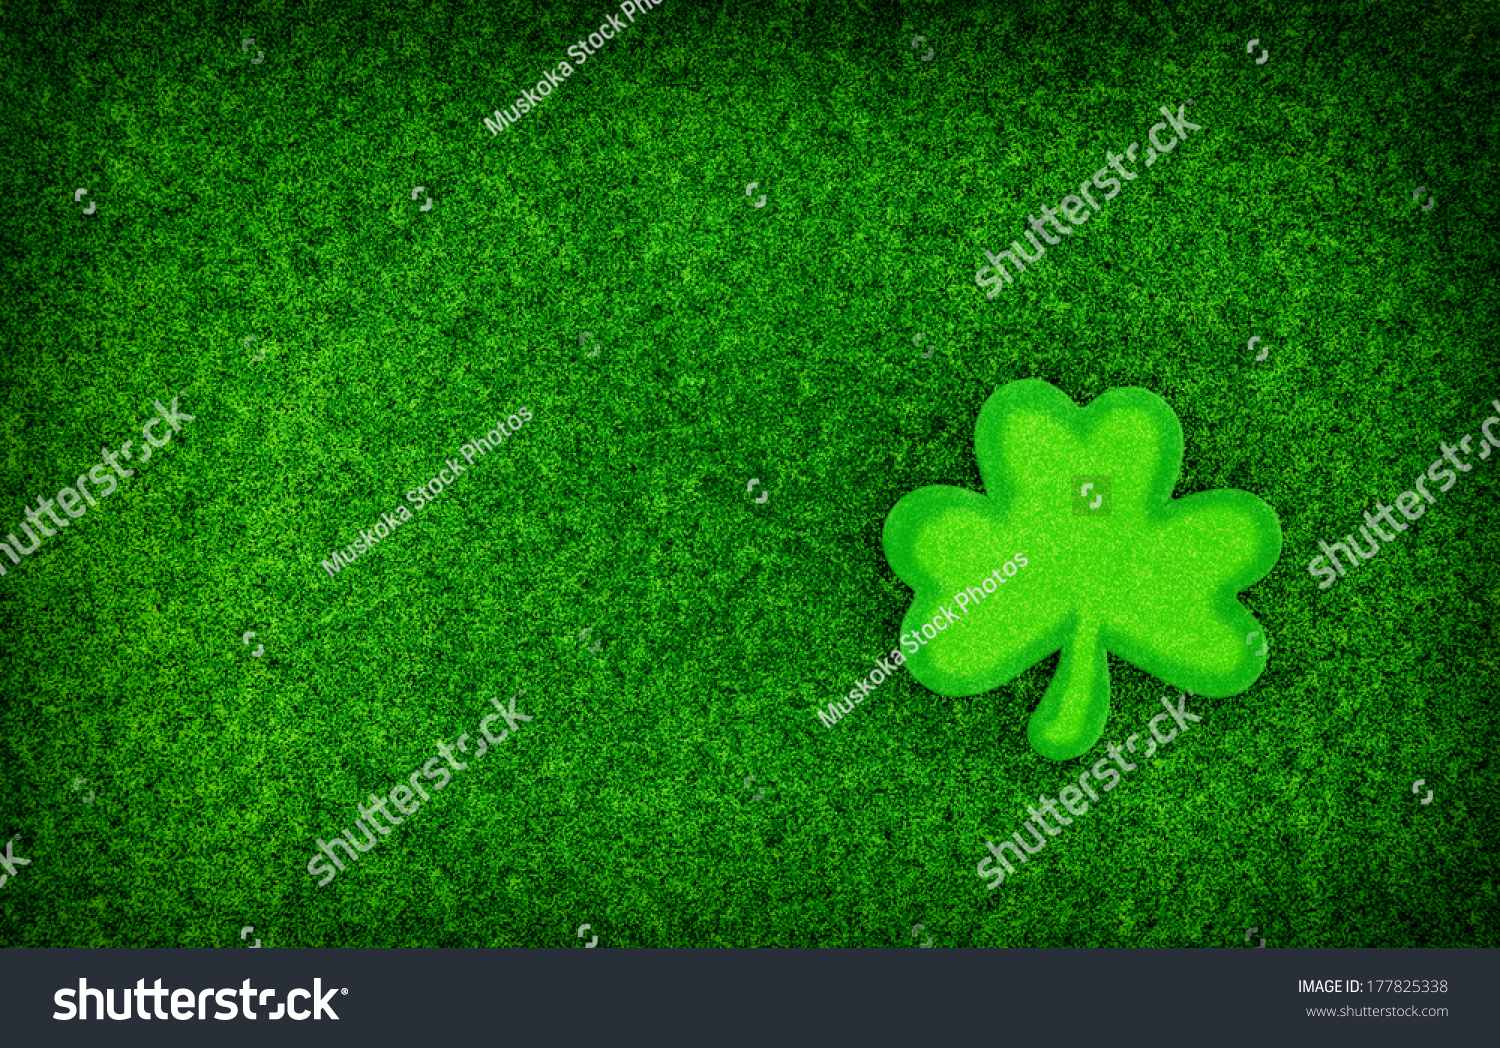 shamrock singles over 50 Singles over 50 know - it's important to have a good time when it comes to the modern world of dating, not only the younger people are having fun singles over 50 know that it's also.